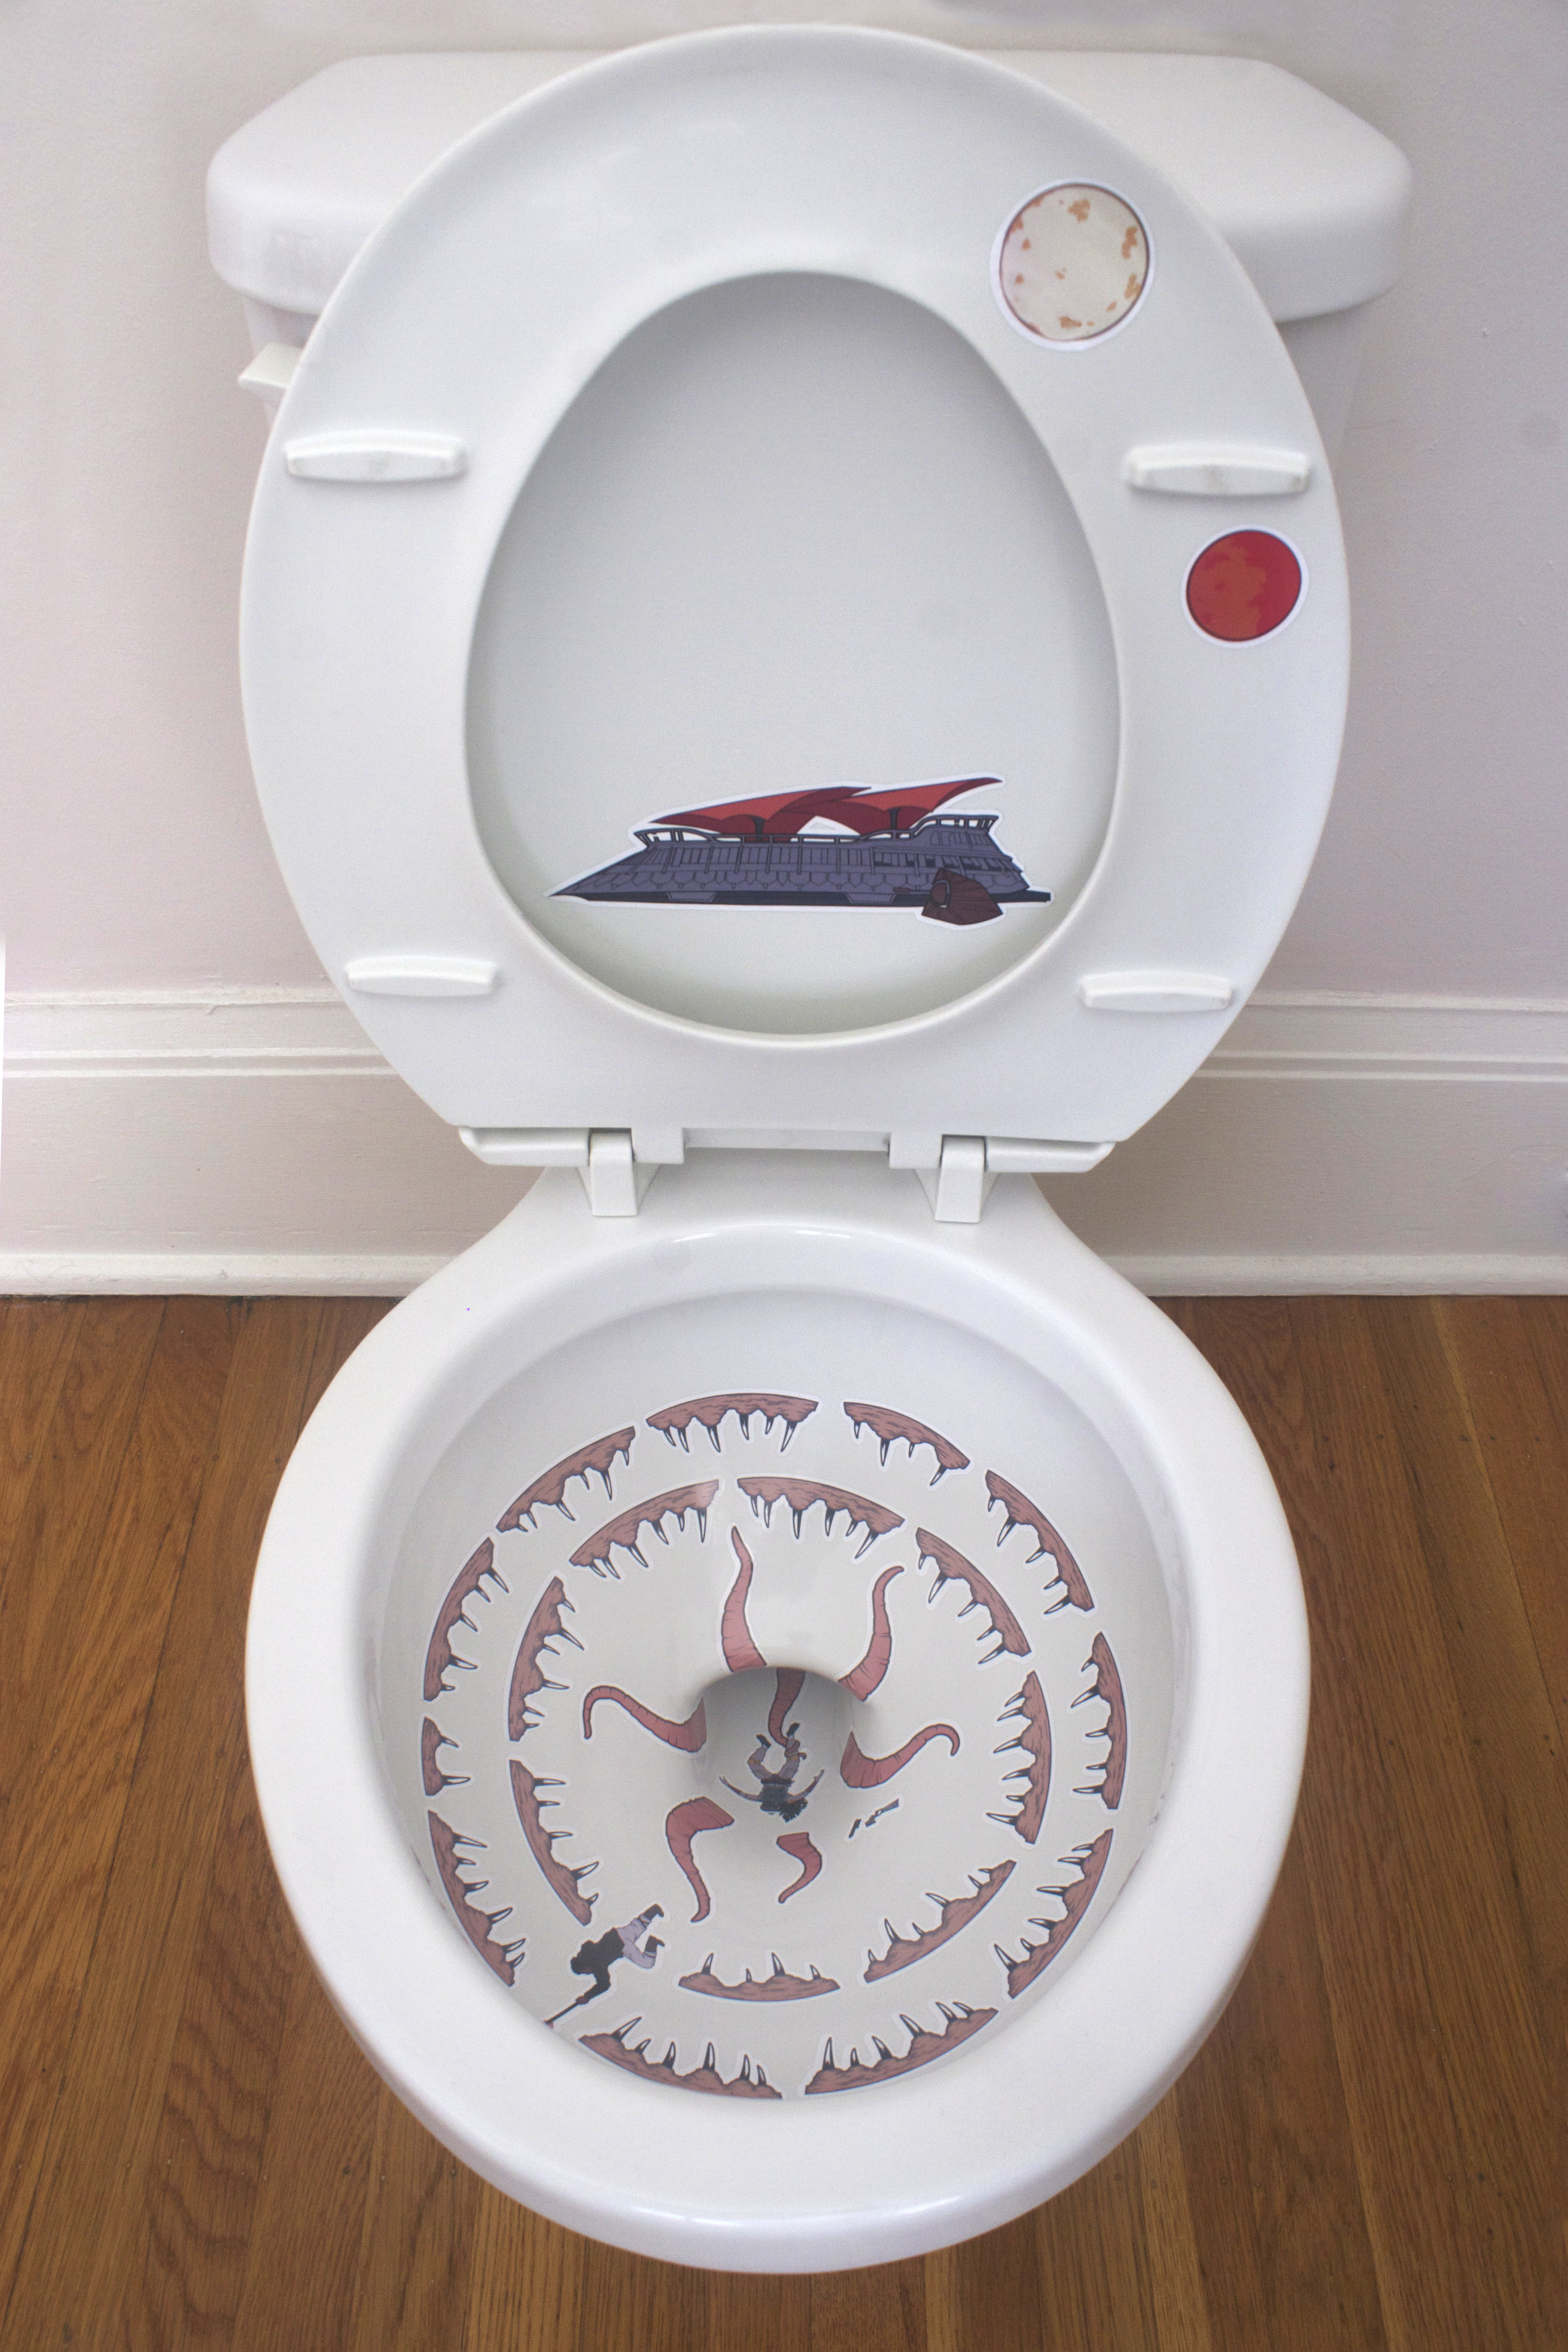 How to turn your toilet into a Star Wars sarlacc pit